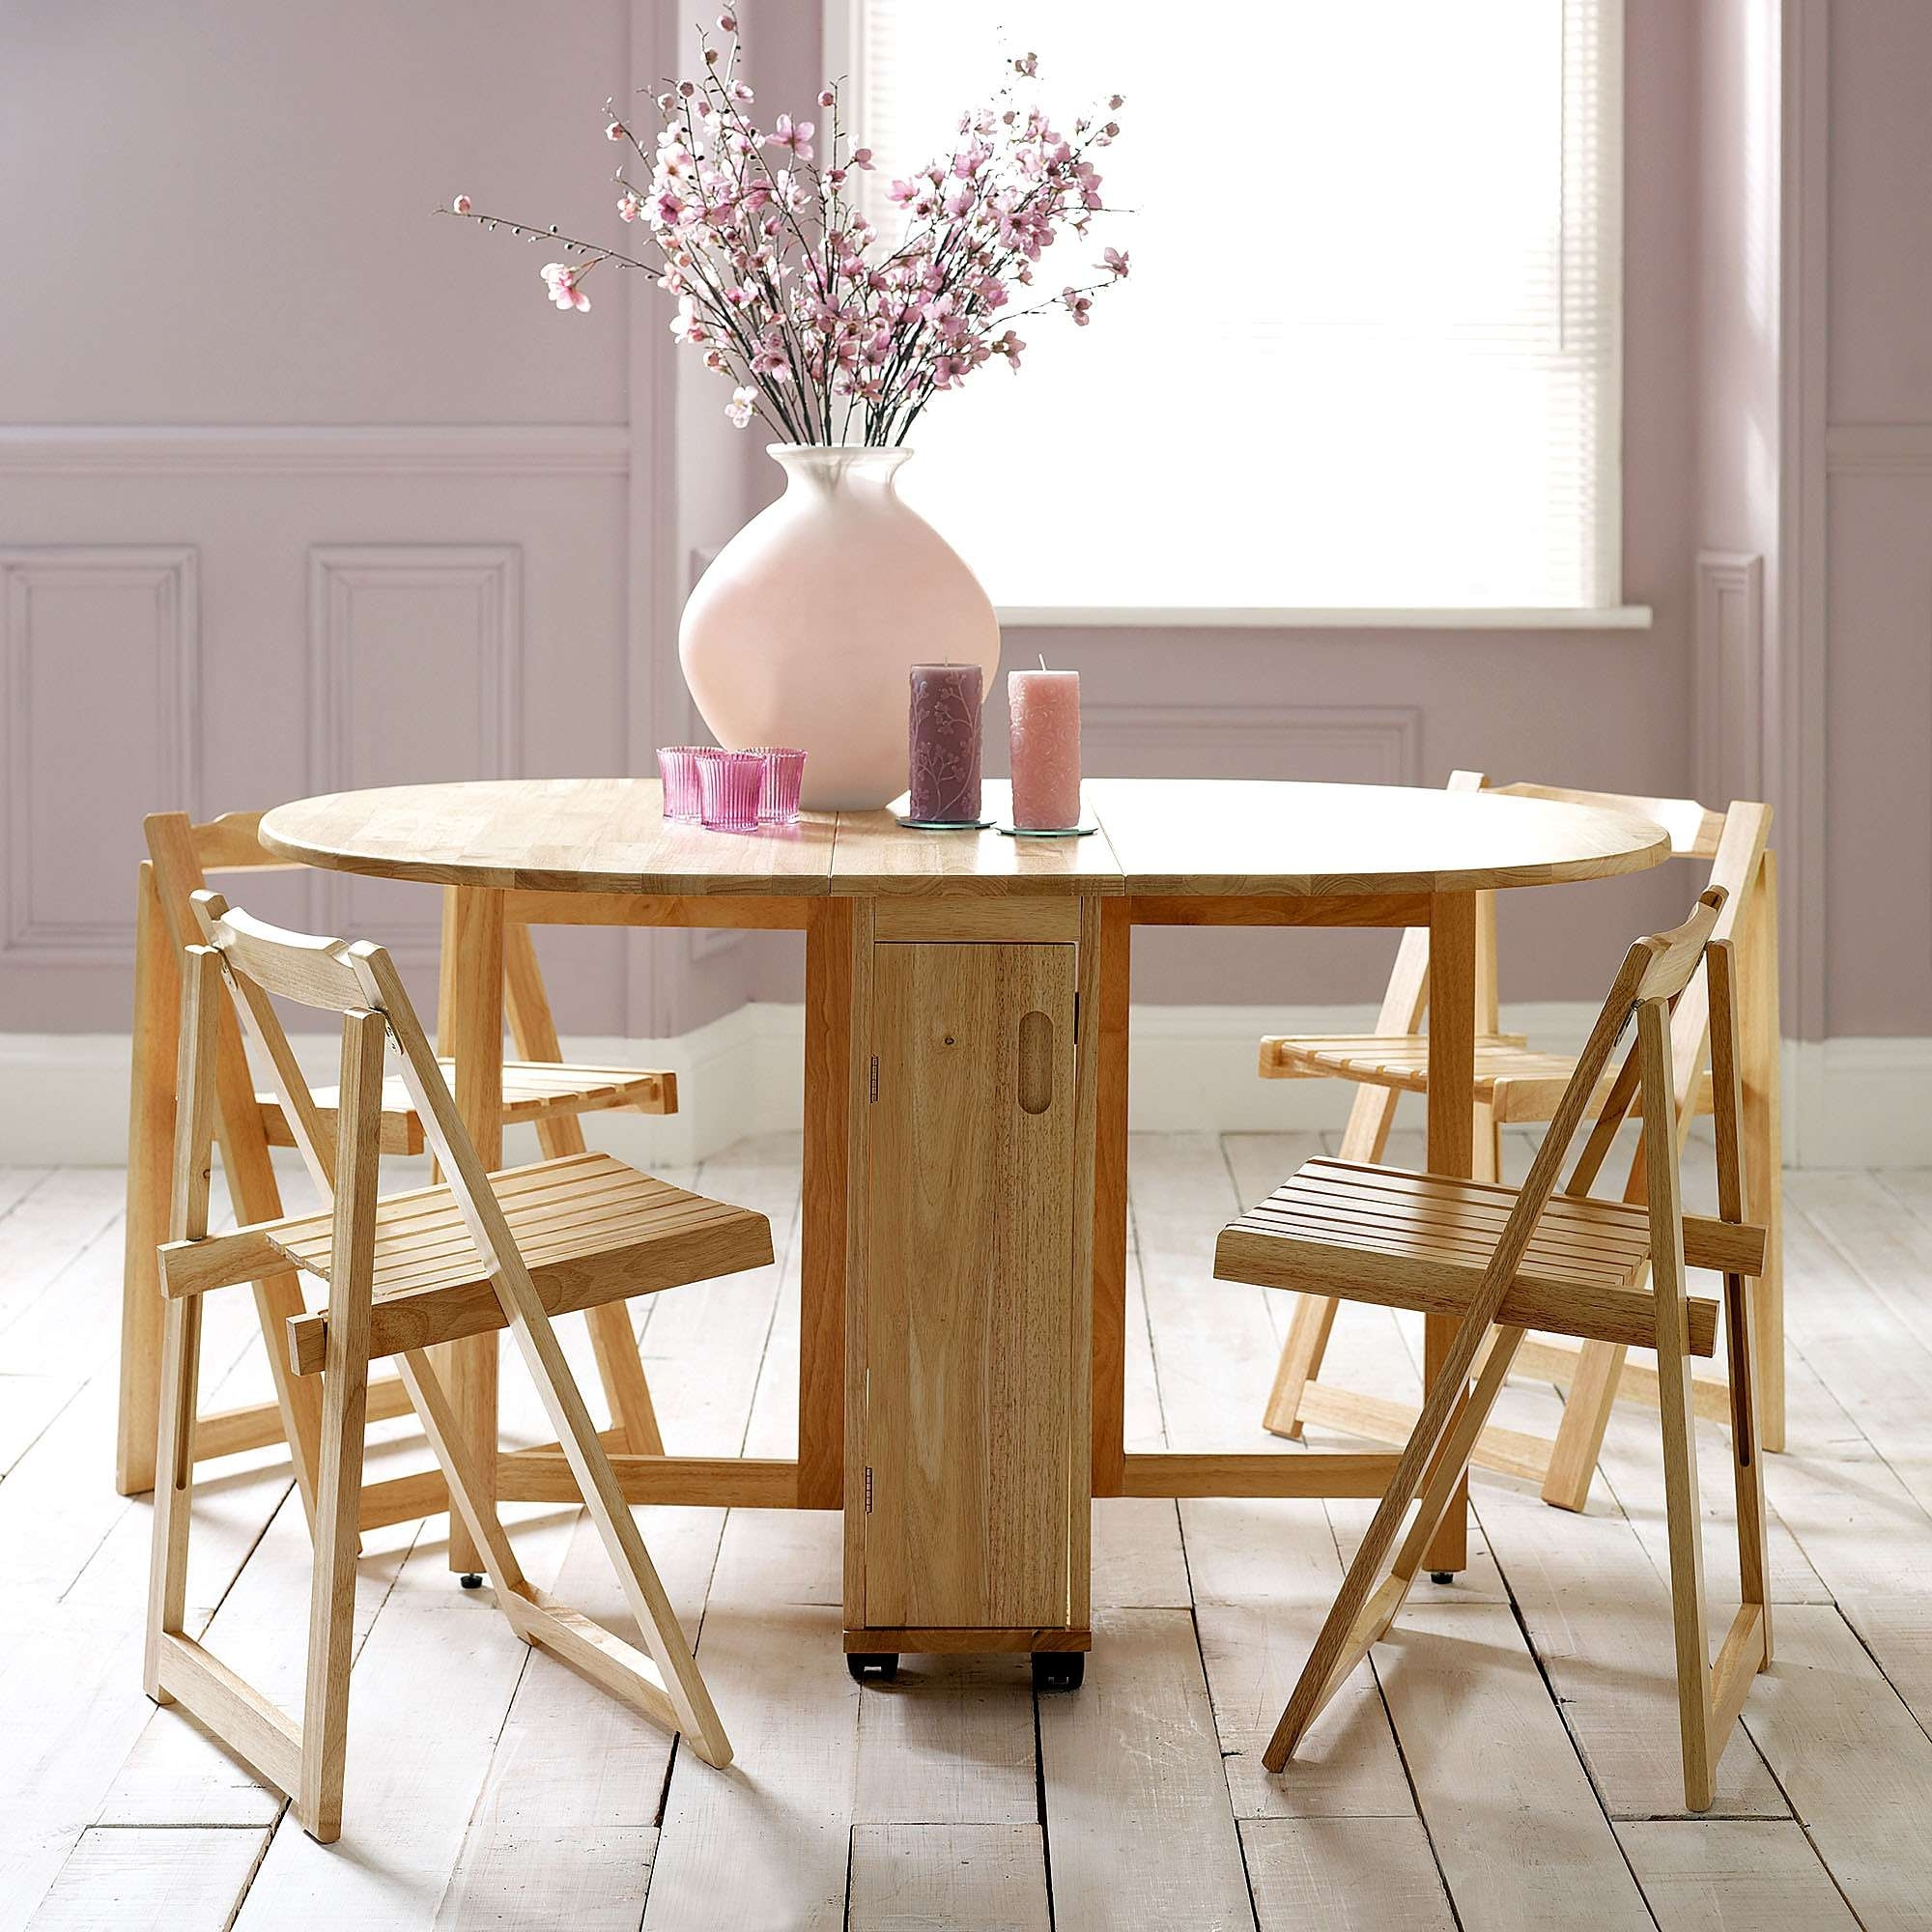 Most Recent Choose A Folding Dining Table For A Small Space – Adorable Home In Compact Folding Dining Tables And Chairs (View 14 of 25)